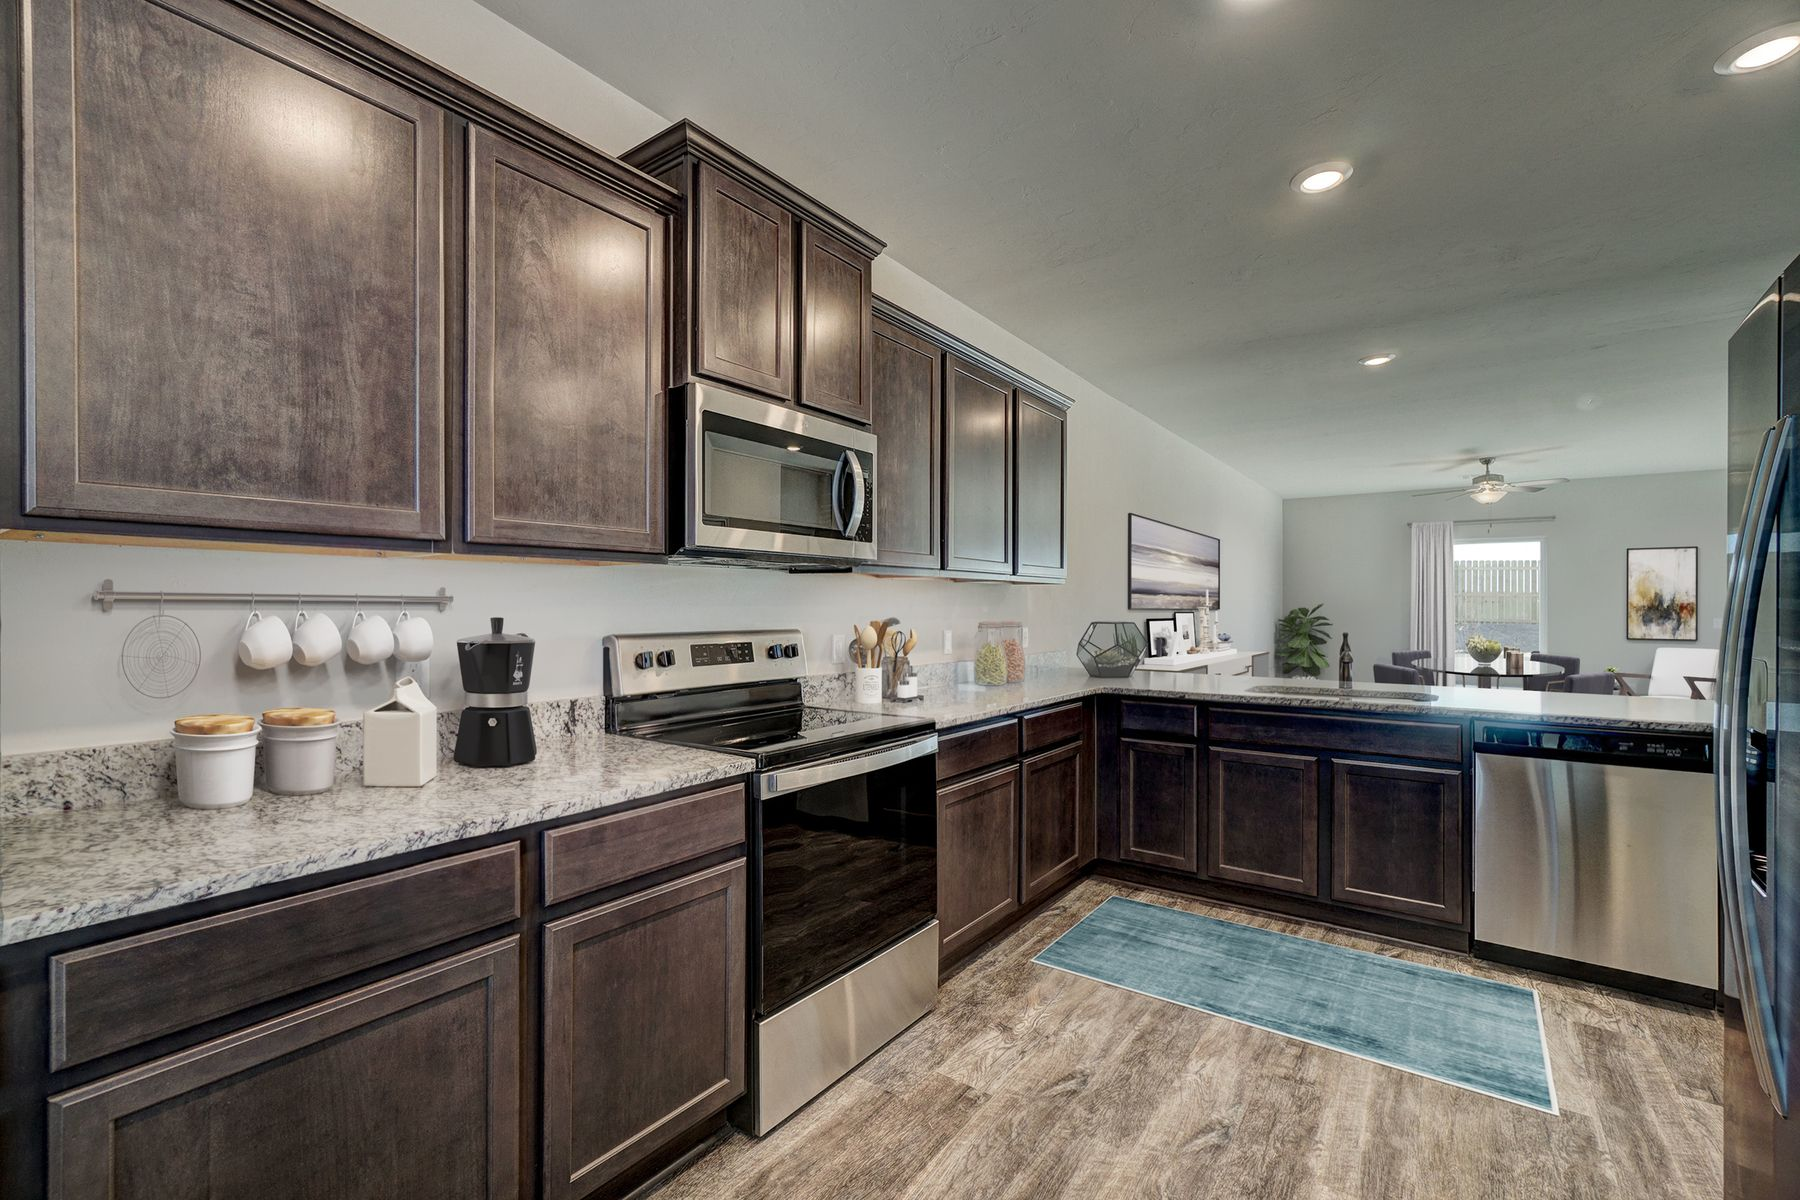 Kitchen featured in the Driftwood By LGI Homes in Oklahoma City, OK